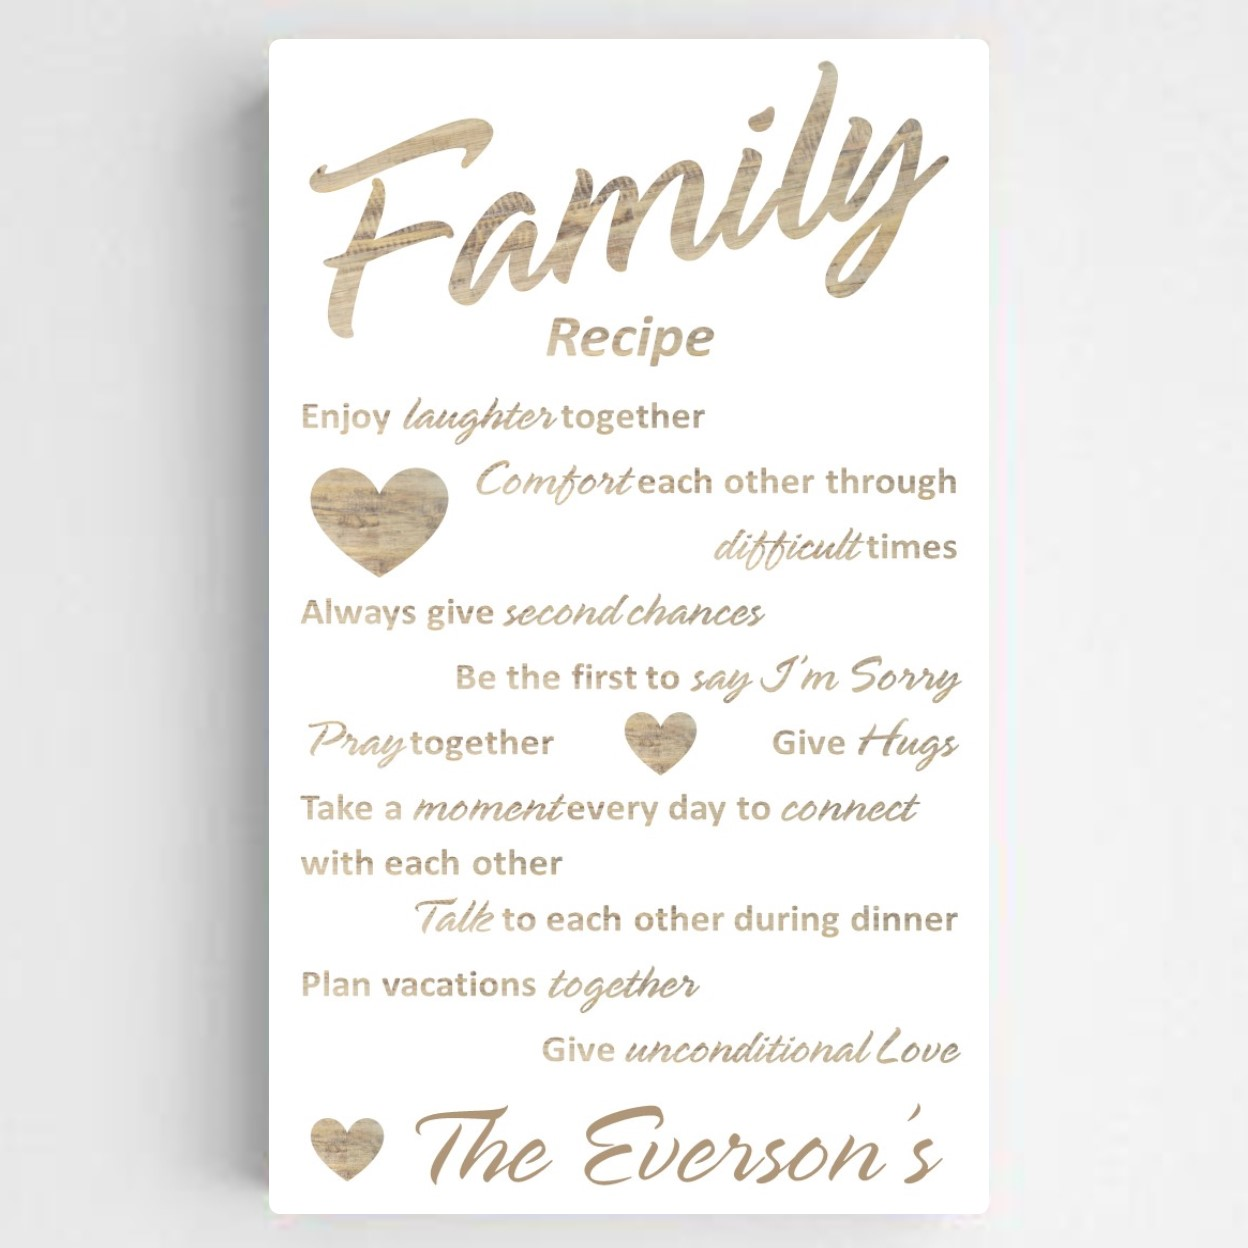 Ideas For 50th Wedding Anniversary Present : Wedding Anniversary Gift Ideas Parents 50th wedding anniversary gift ...